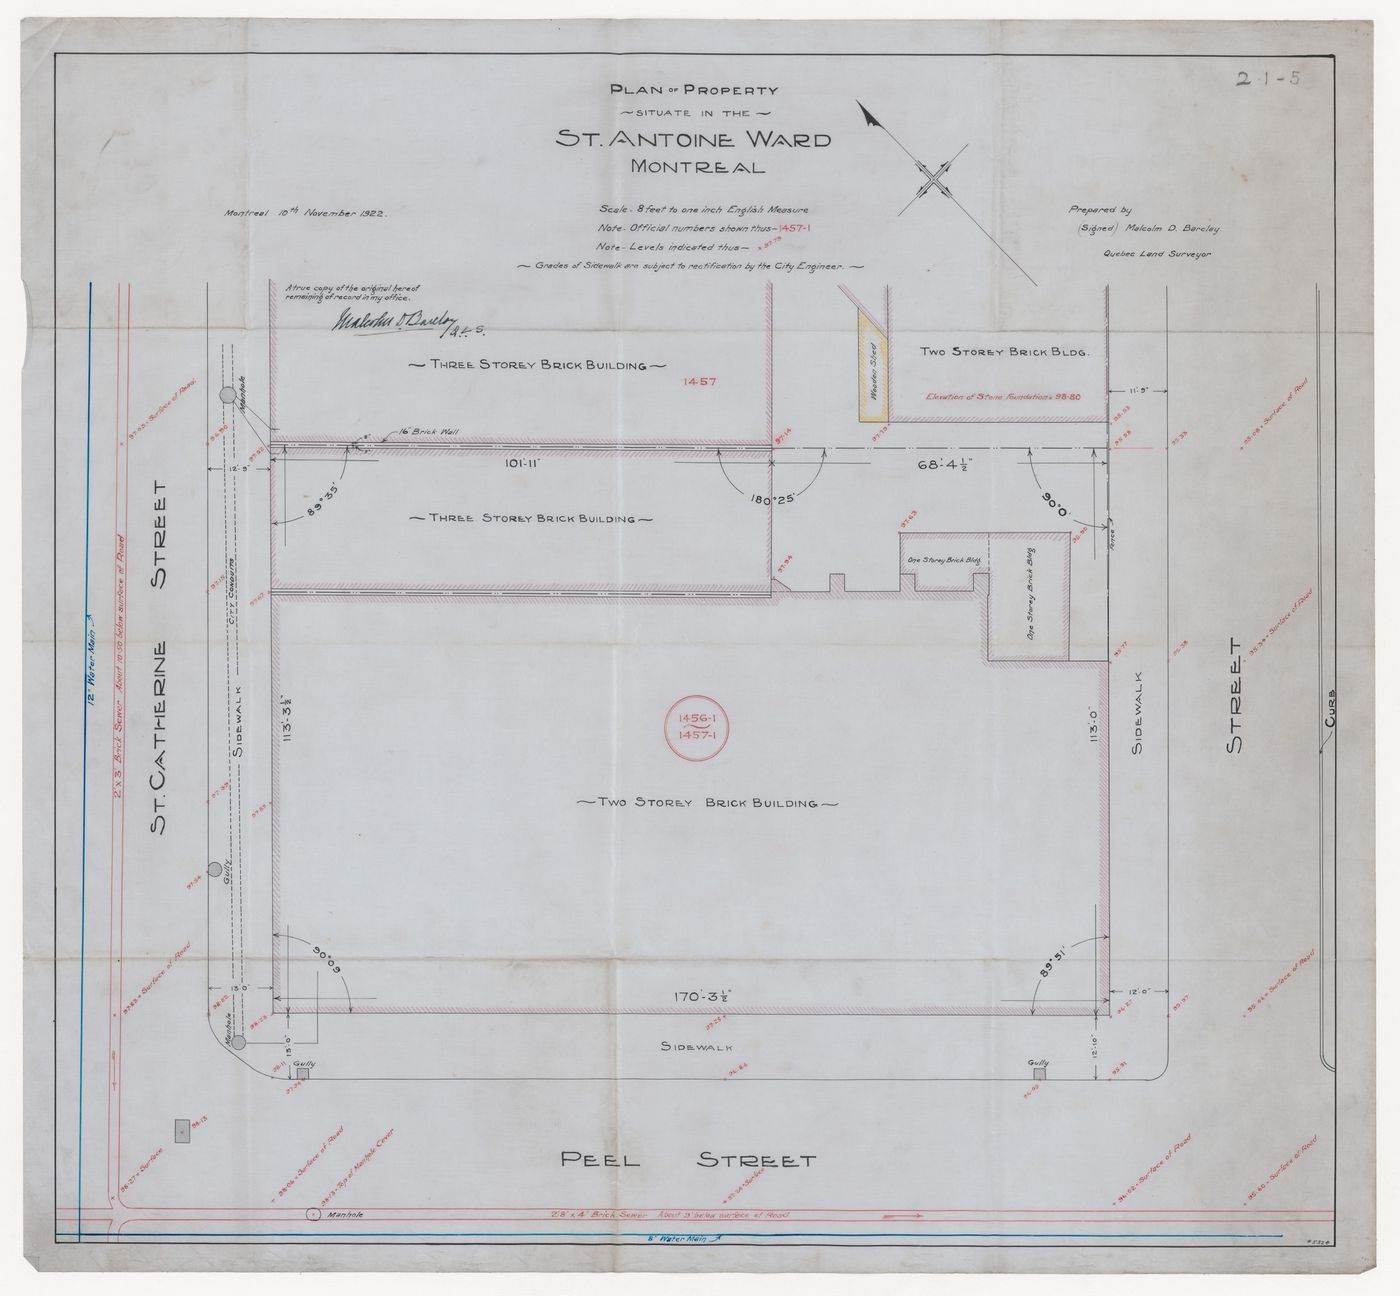 Plan of property in St Antoine Ward for Dominion Square Building, Montreal, Québec